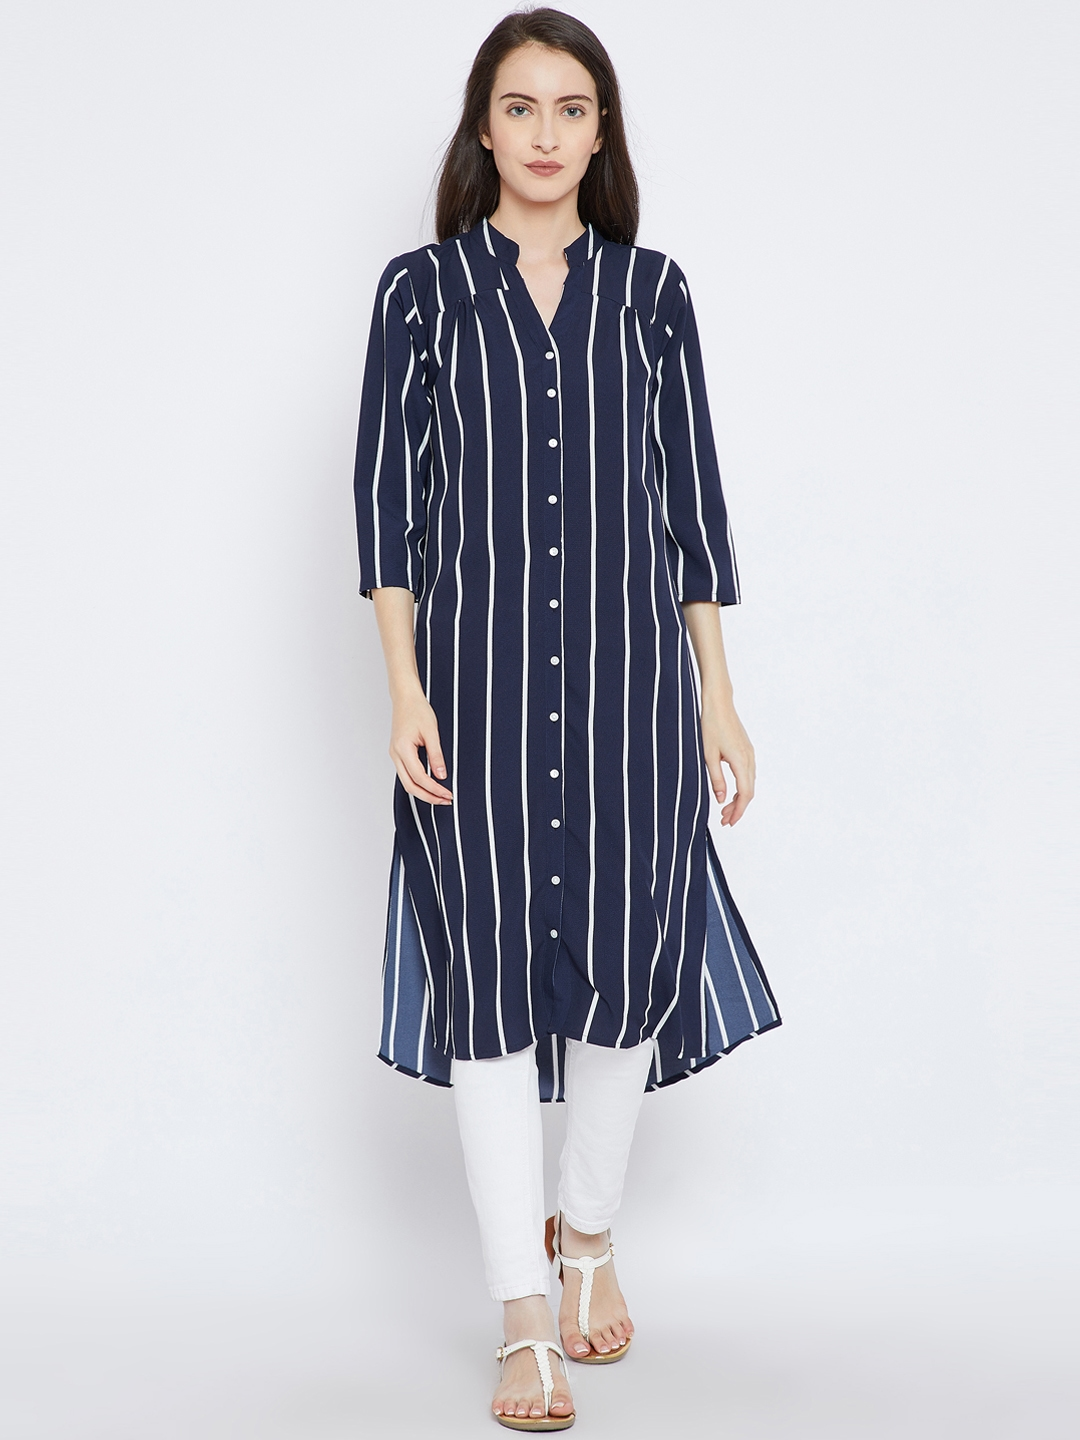 50f59369d6f Buy Ruhaans Navy Blue Striped Tunic - Tunics for Women 7255495   Myntra